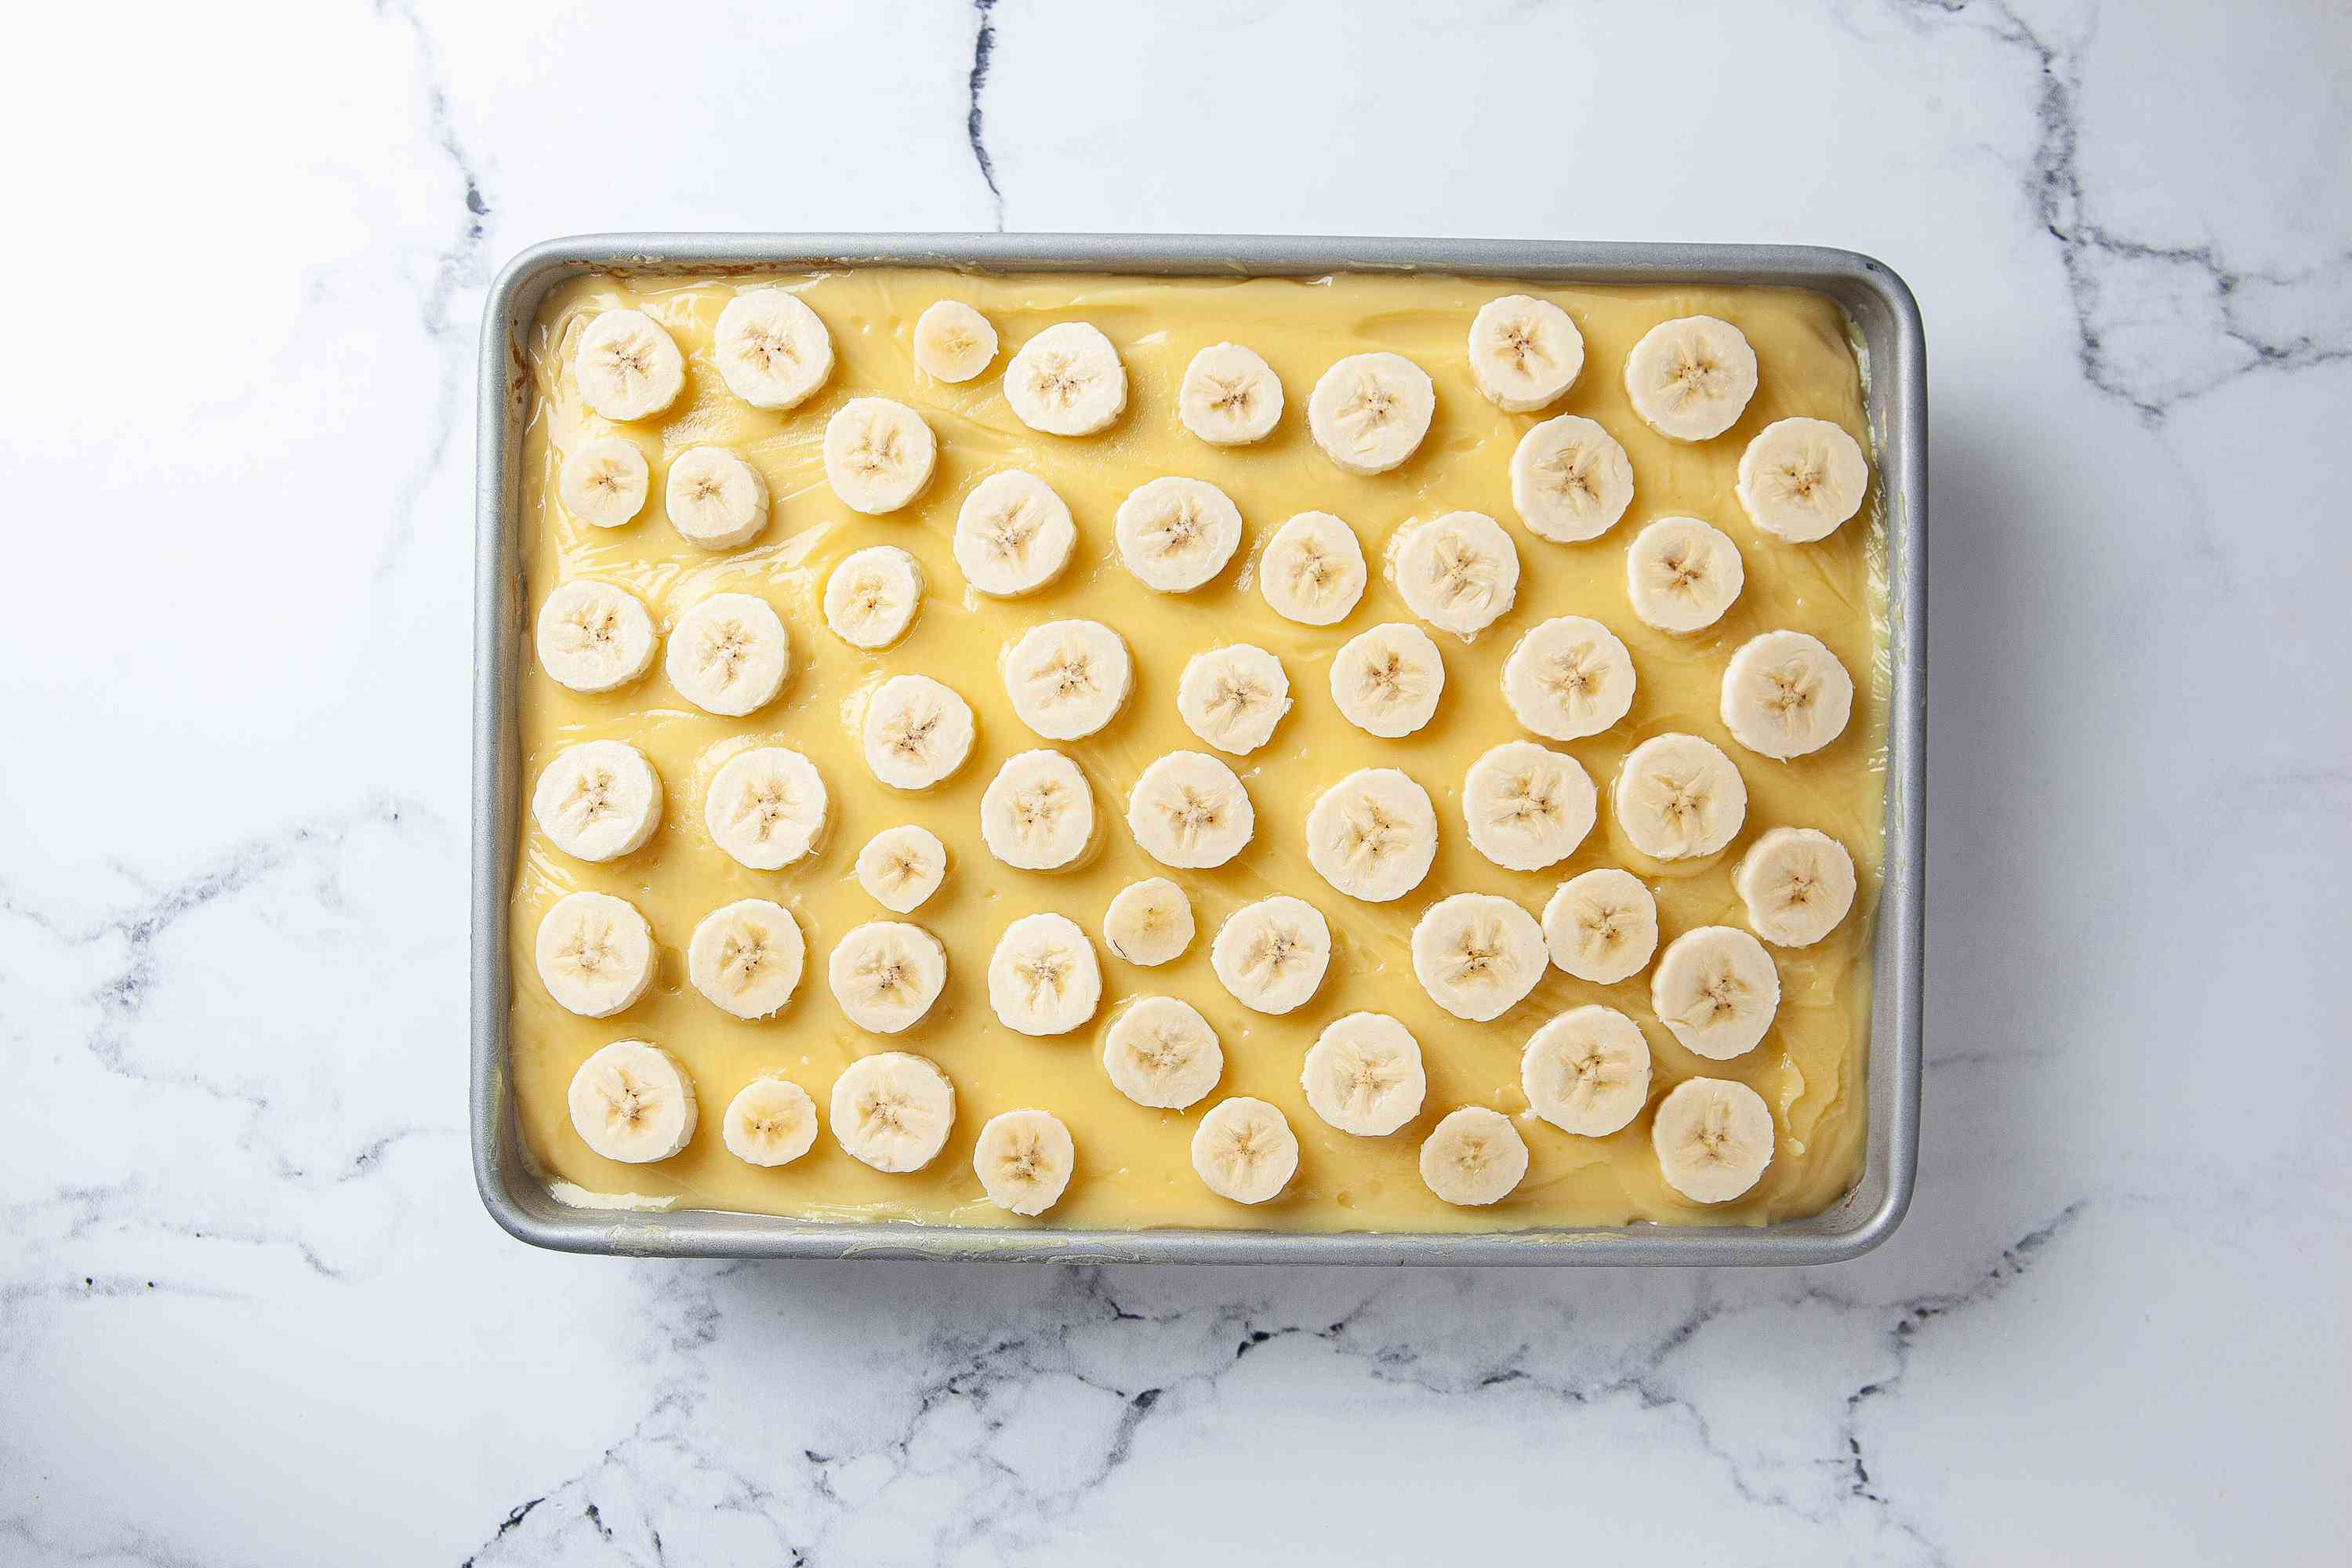 Top with sliced bananas